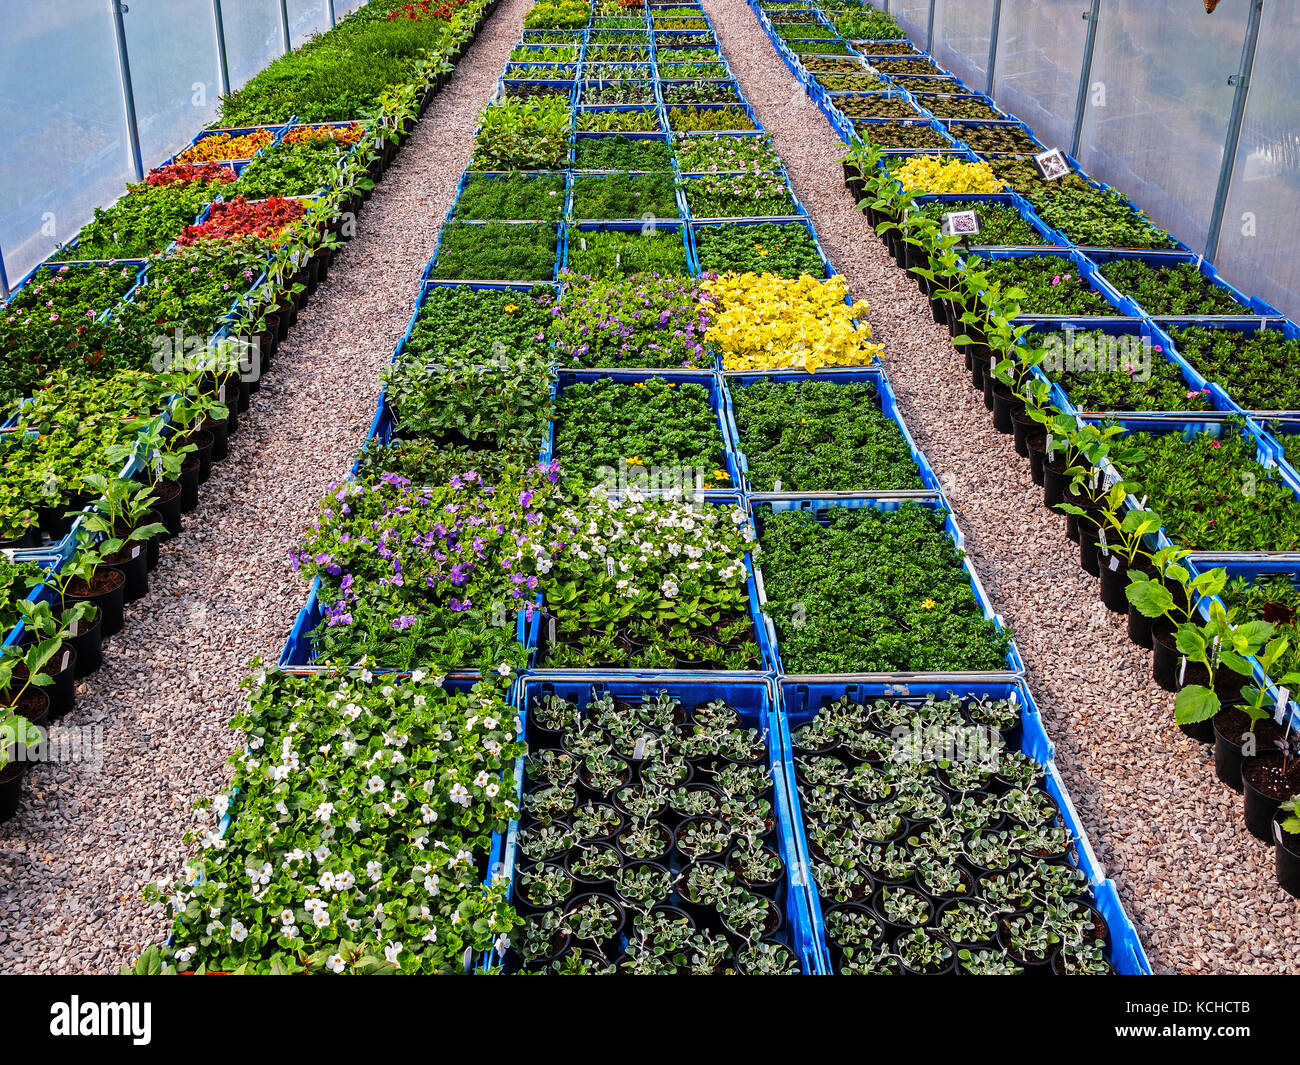 Nursery Commercial Polytunnel - Stock Image